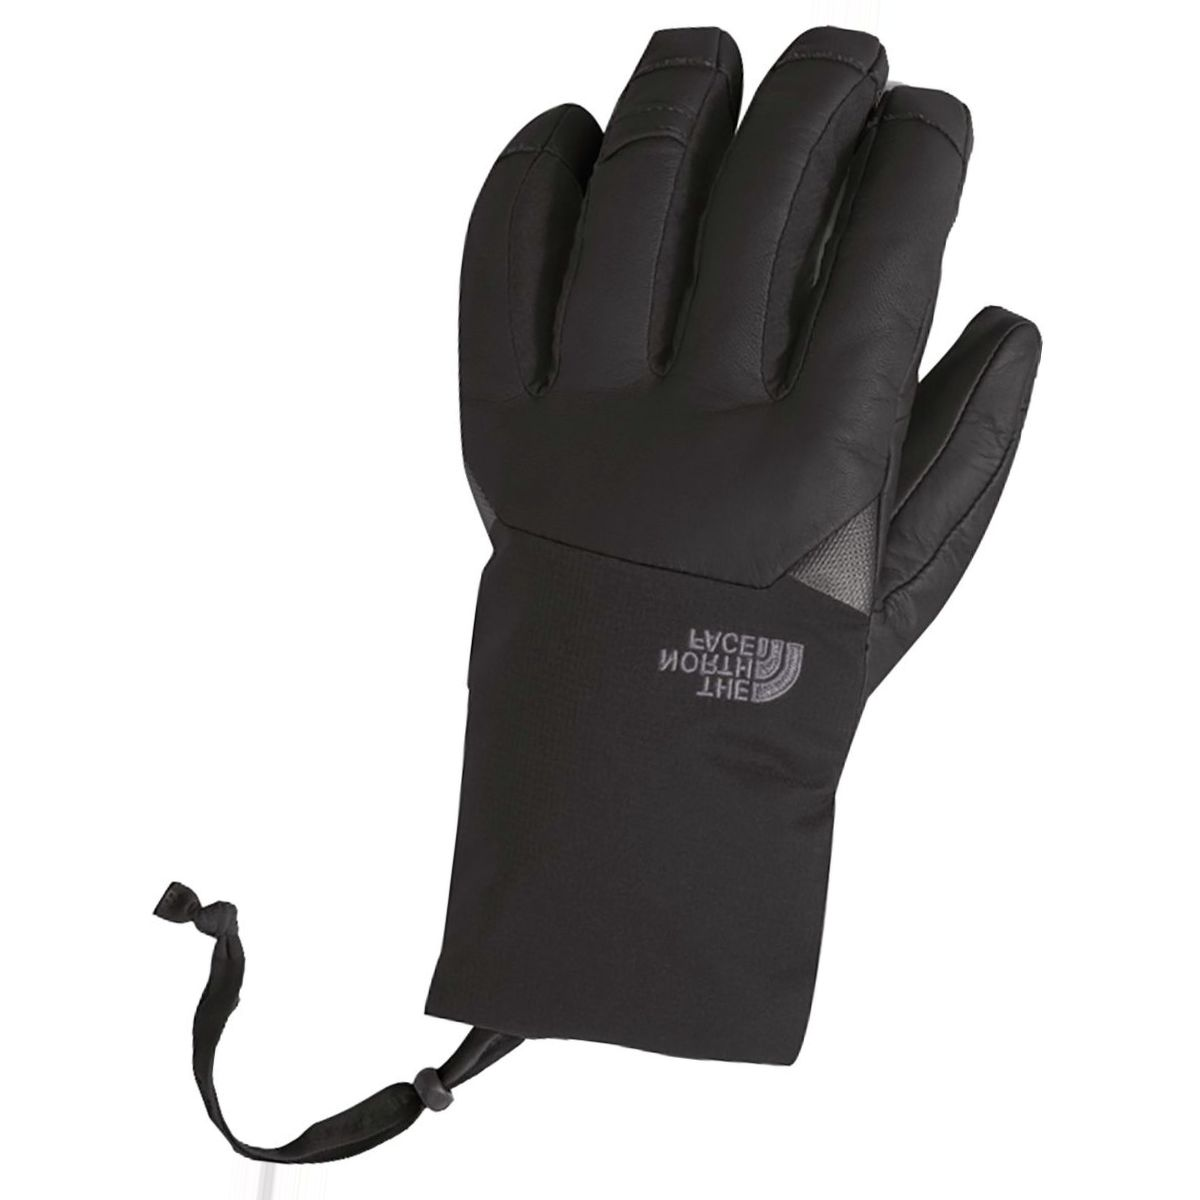 The North Face Patrol Glove - Men's